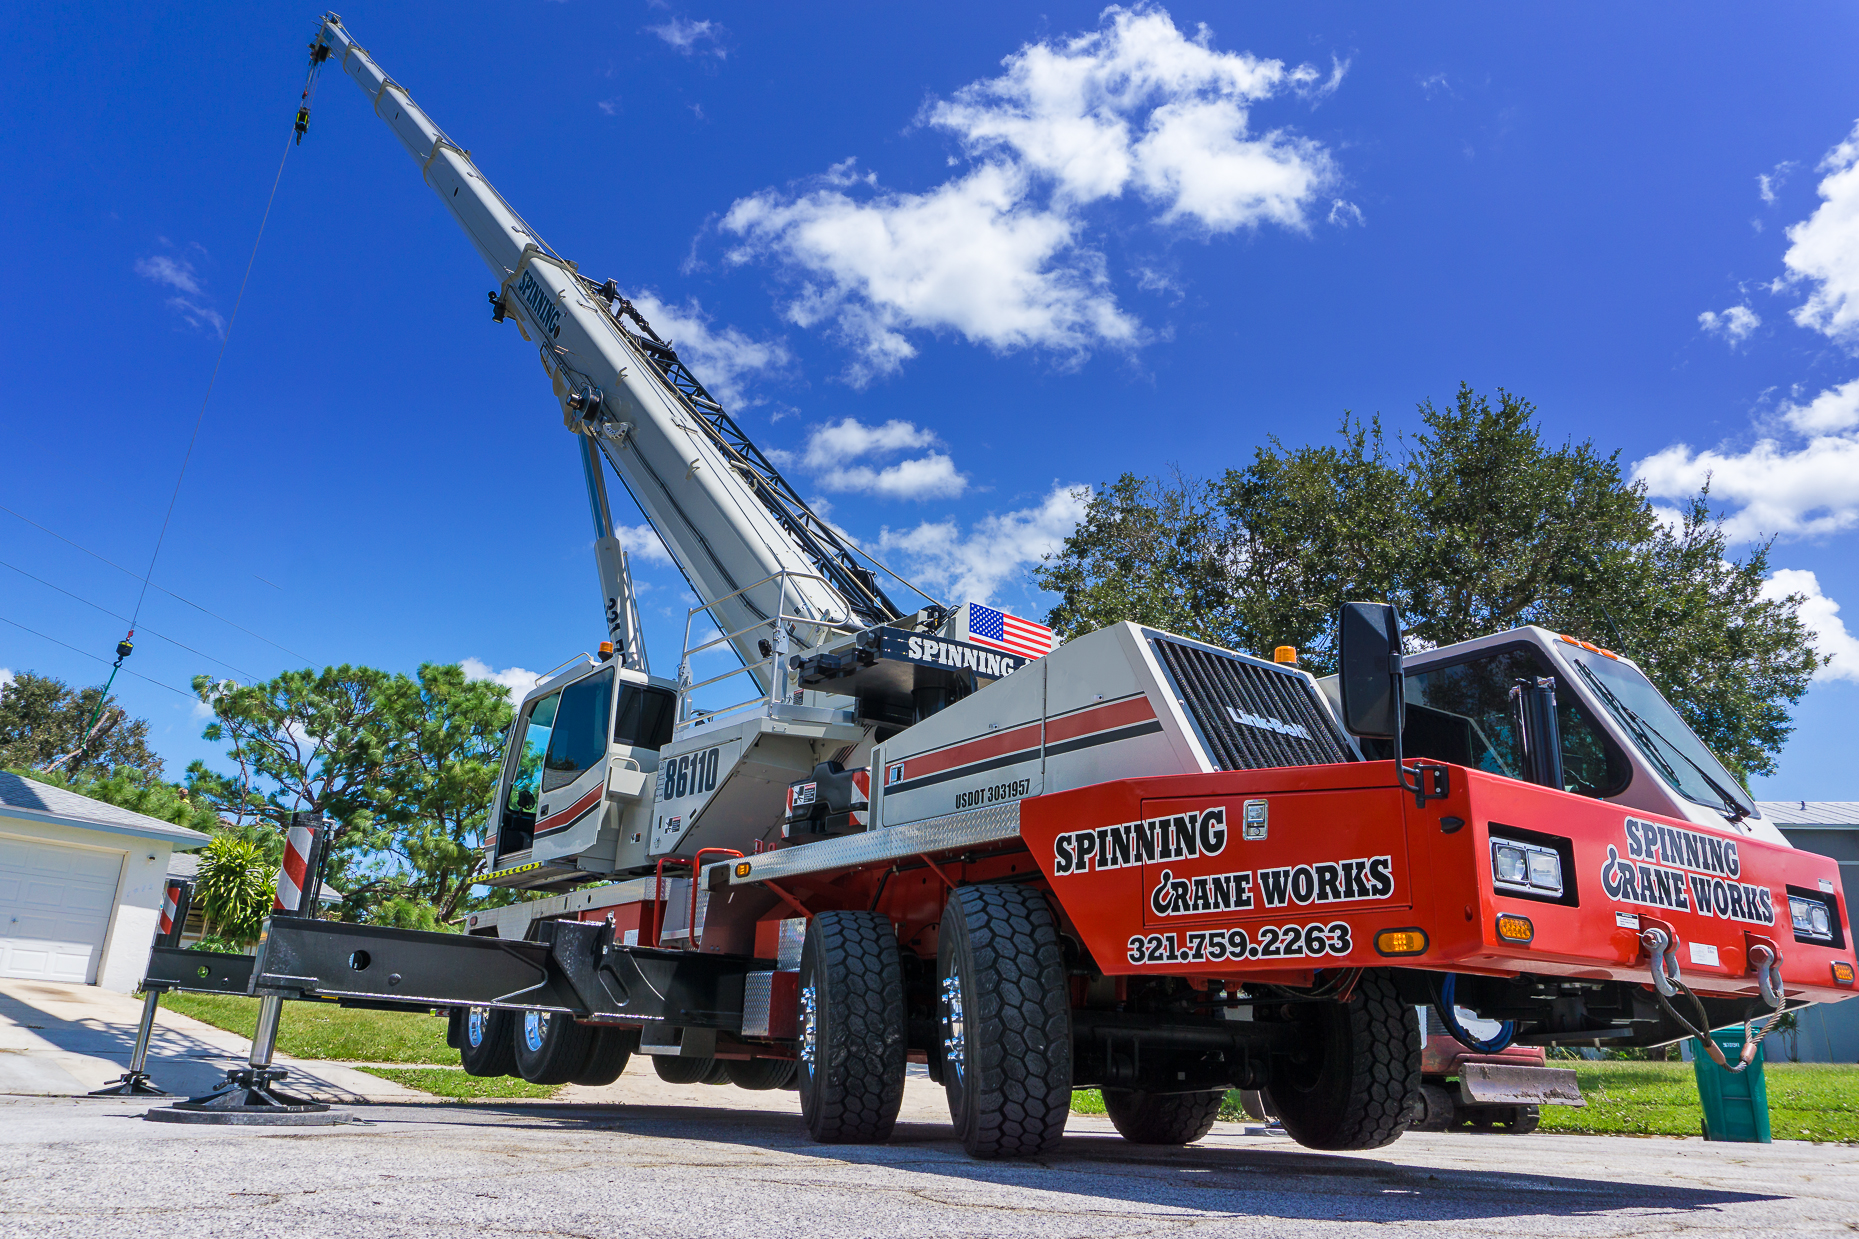 Spinning Crane Works Central Florida's Best Crane Lifting Service